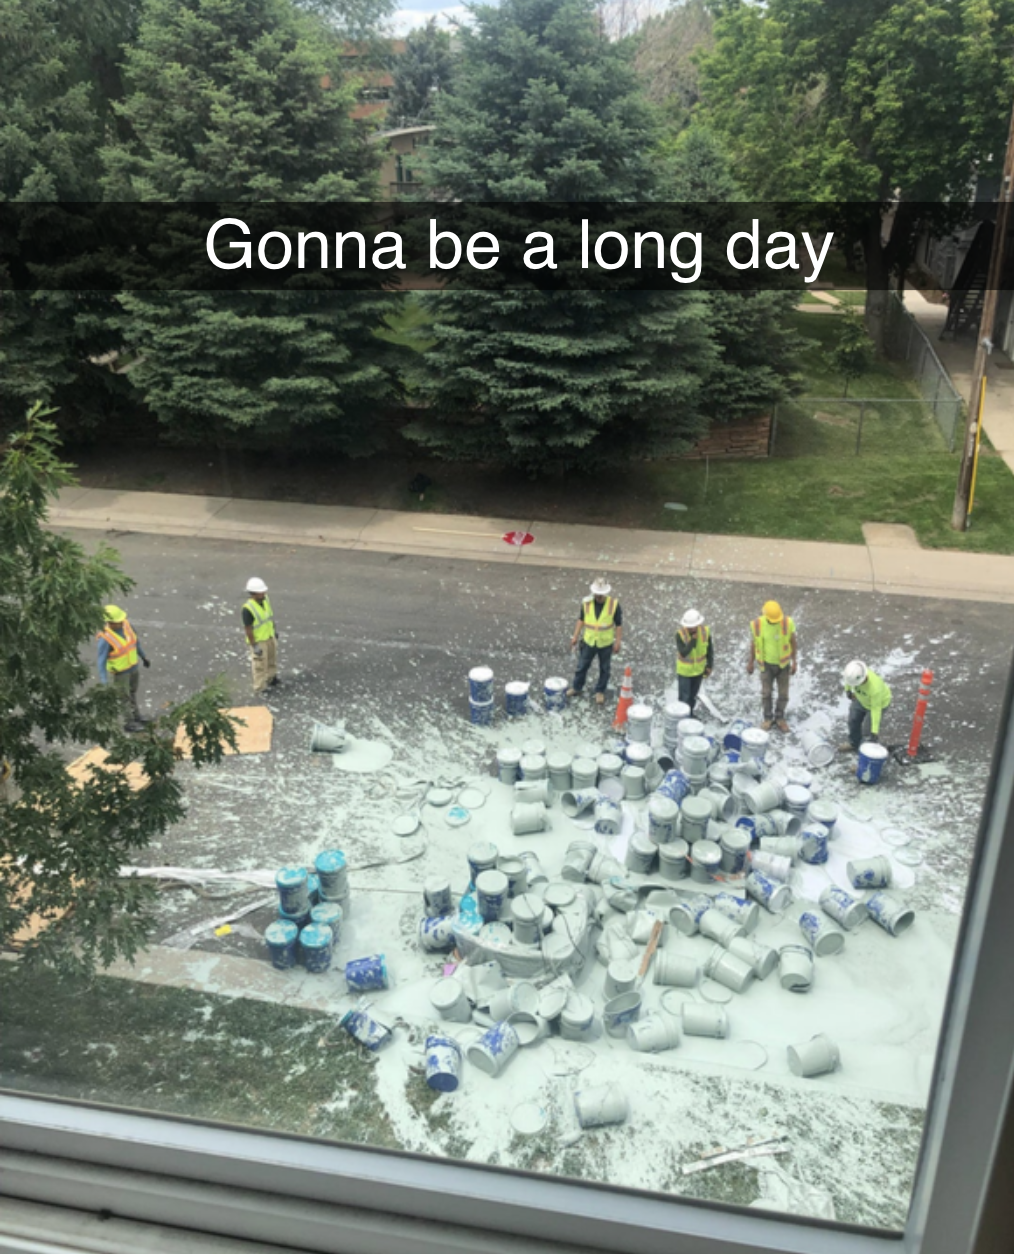 picture of like 25 paint cans upturned in the middle of a road